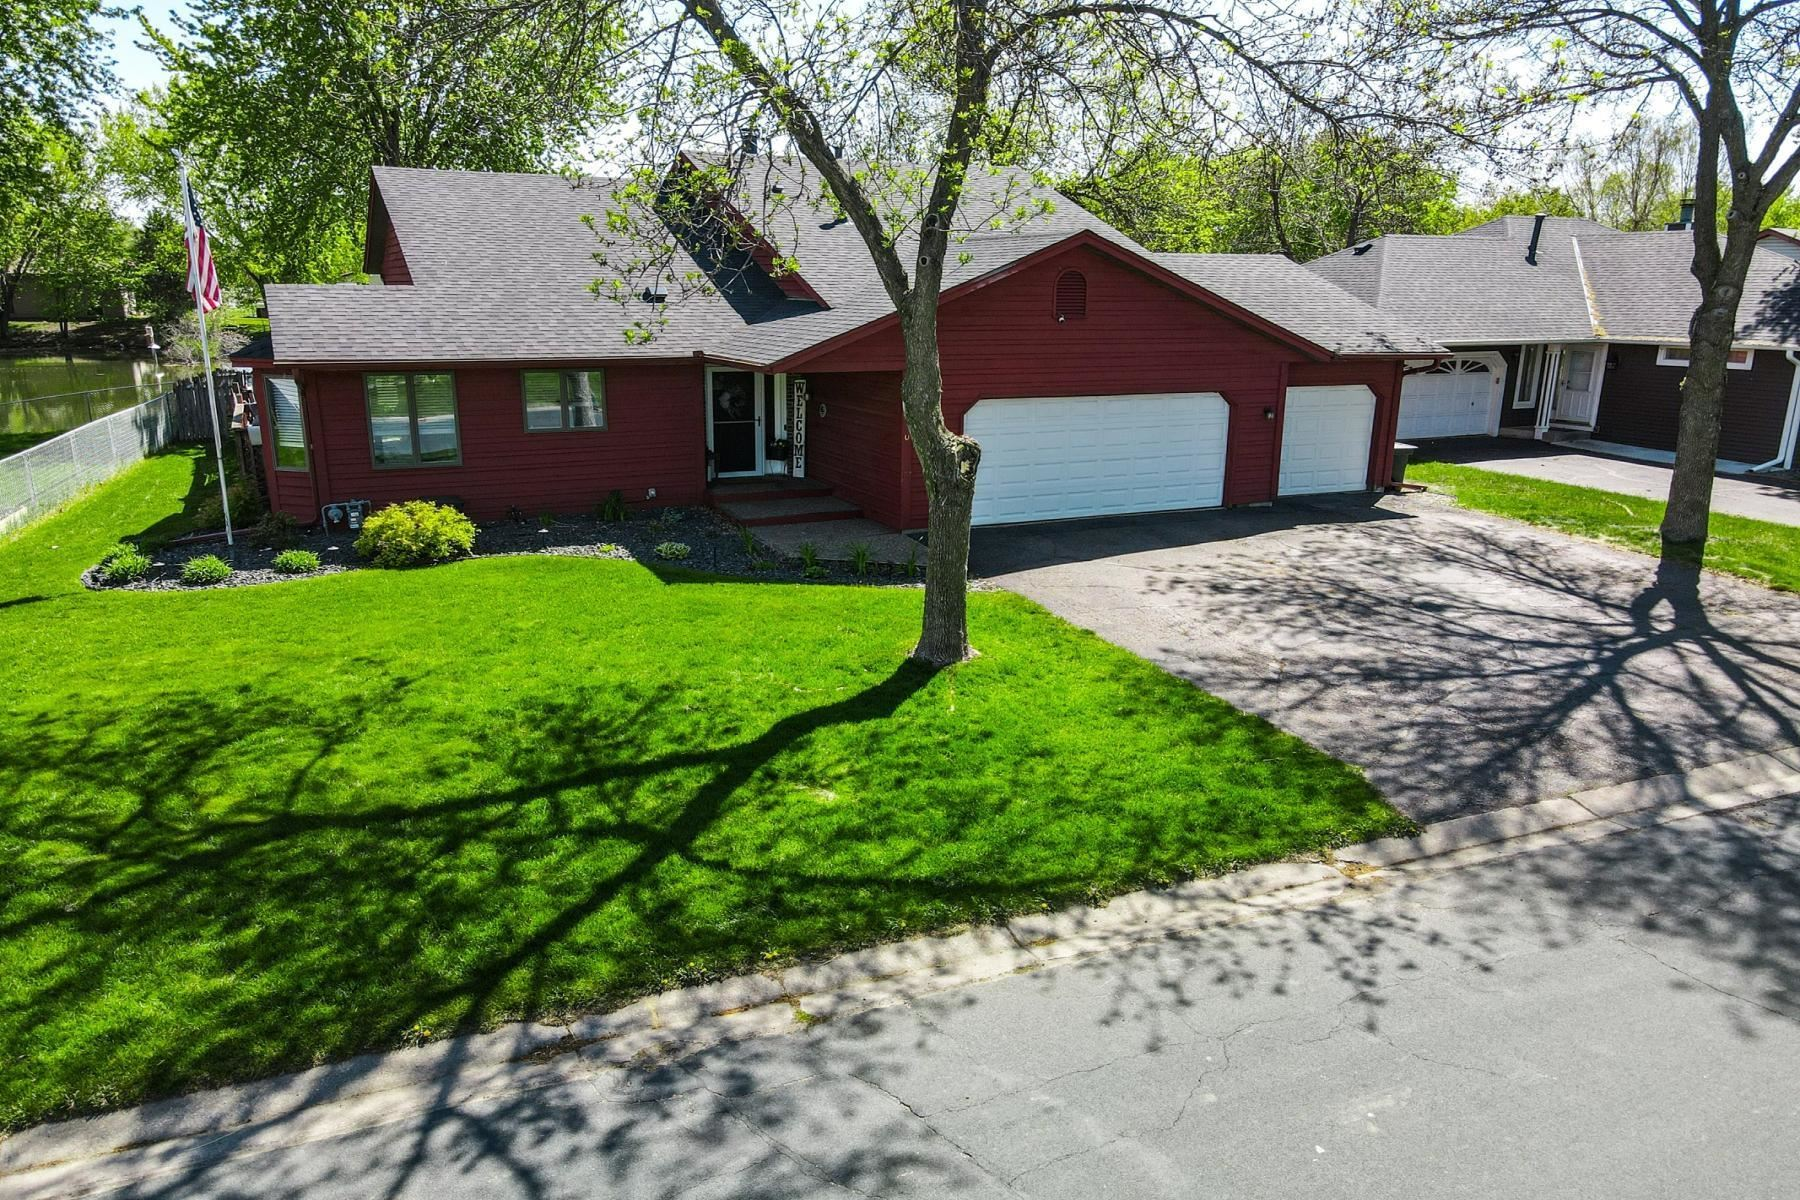 Photo of 5300 180th Street W, Farmington, MN 55024 (MLS # 5757167)